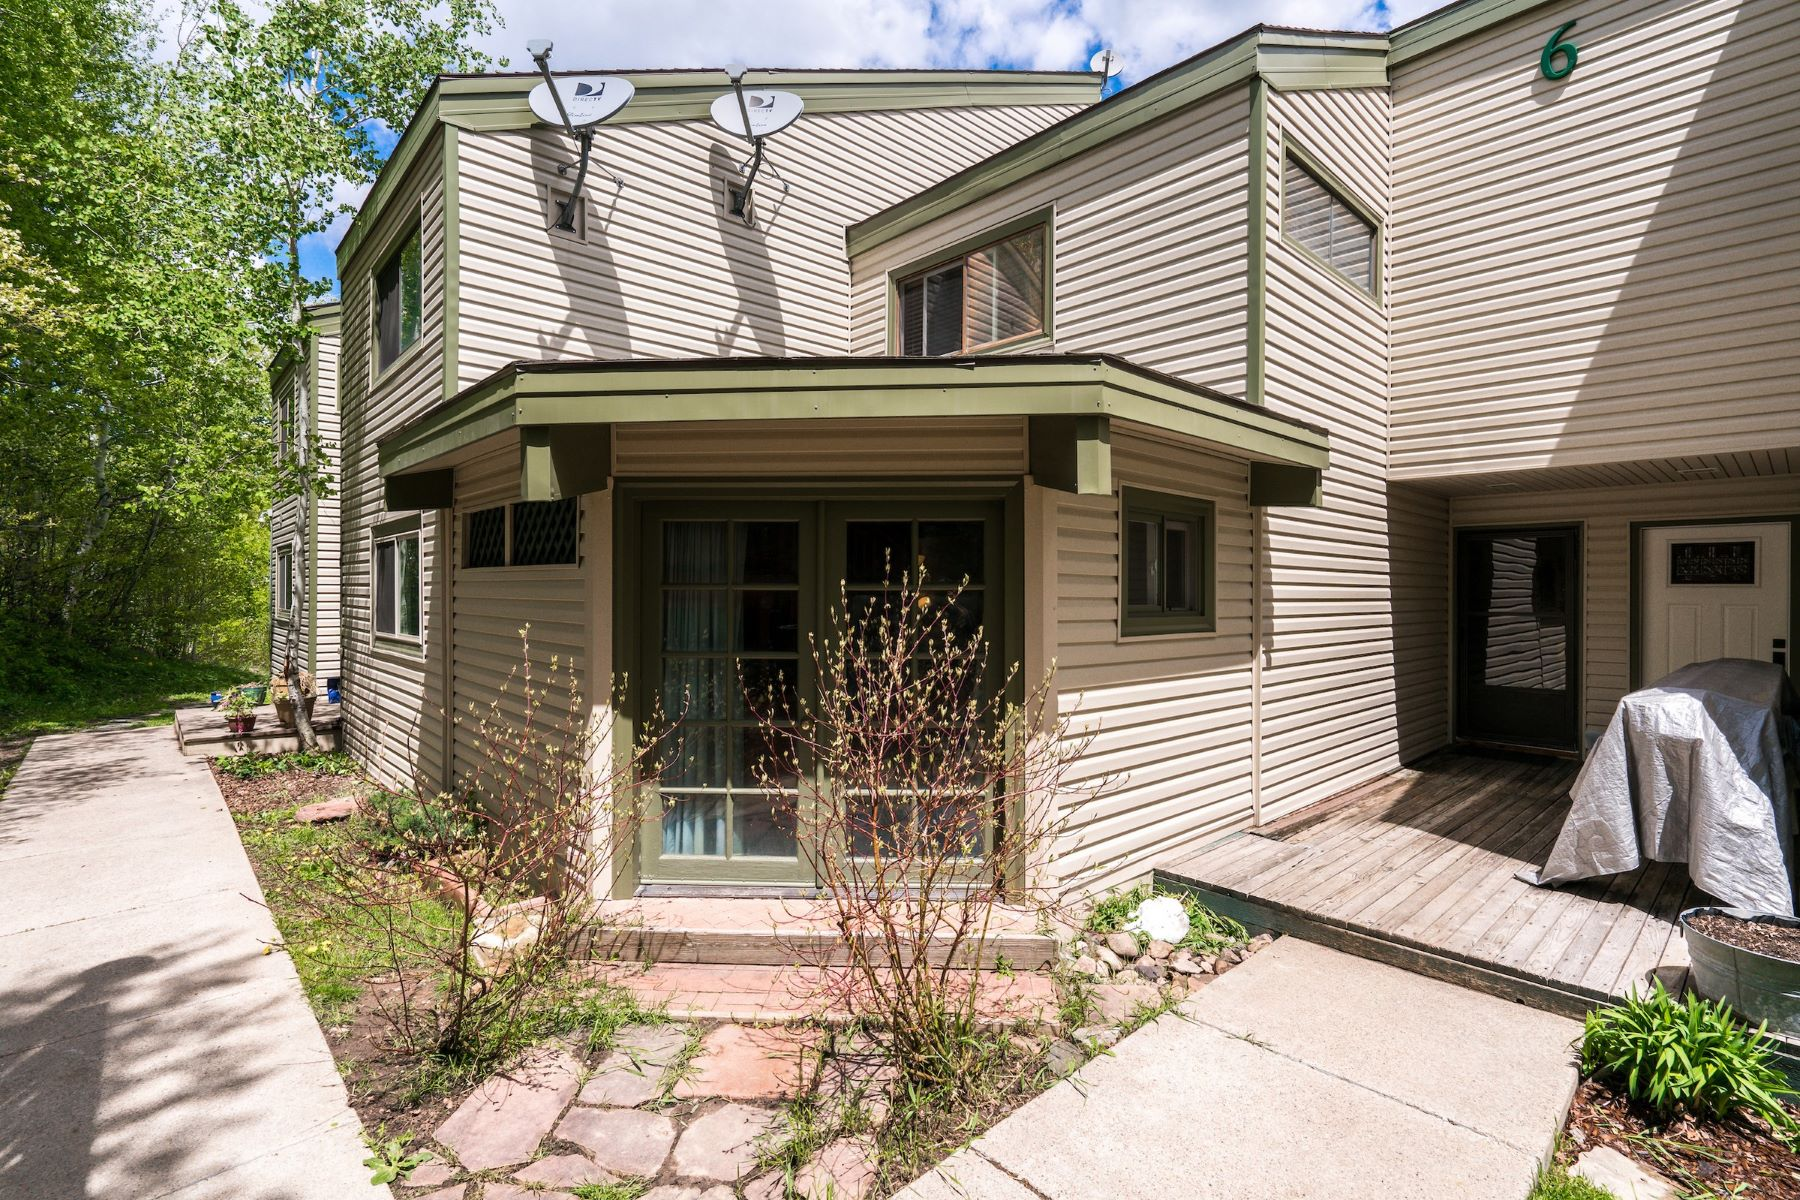 Townhouse for Sale at Desirable Stagecoach Townhome 23120 Schussmarkt Trl C Stagecoach, Oak Creek, Colorado, 80467 United States